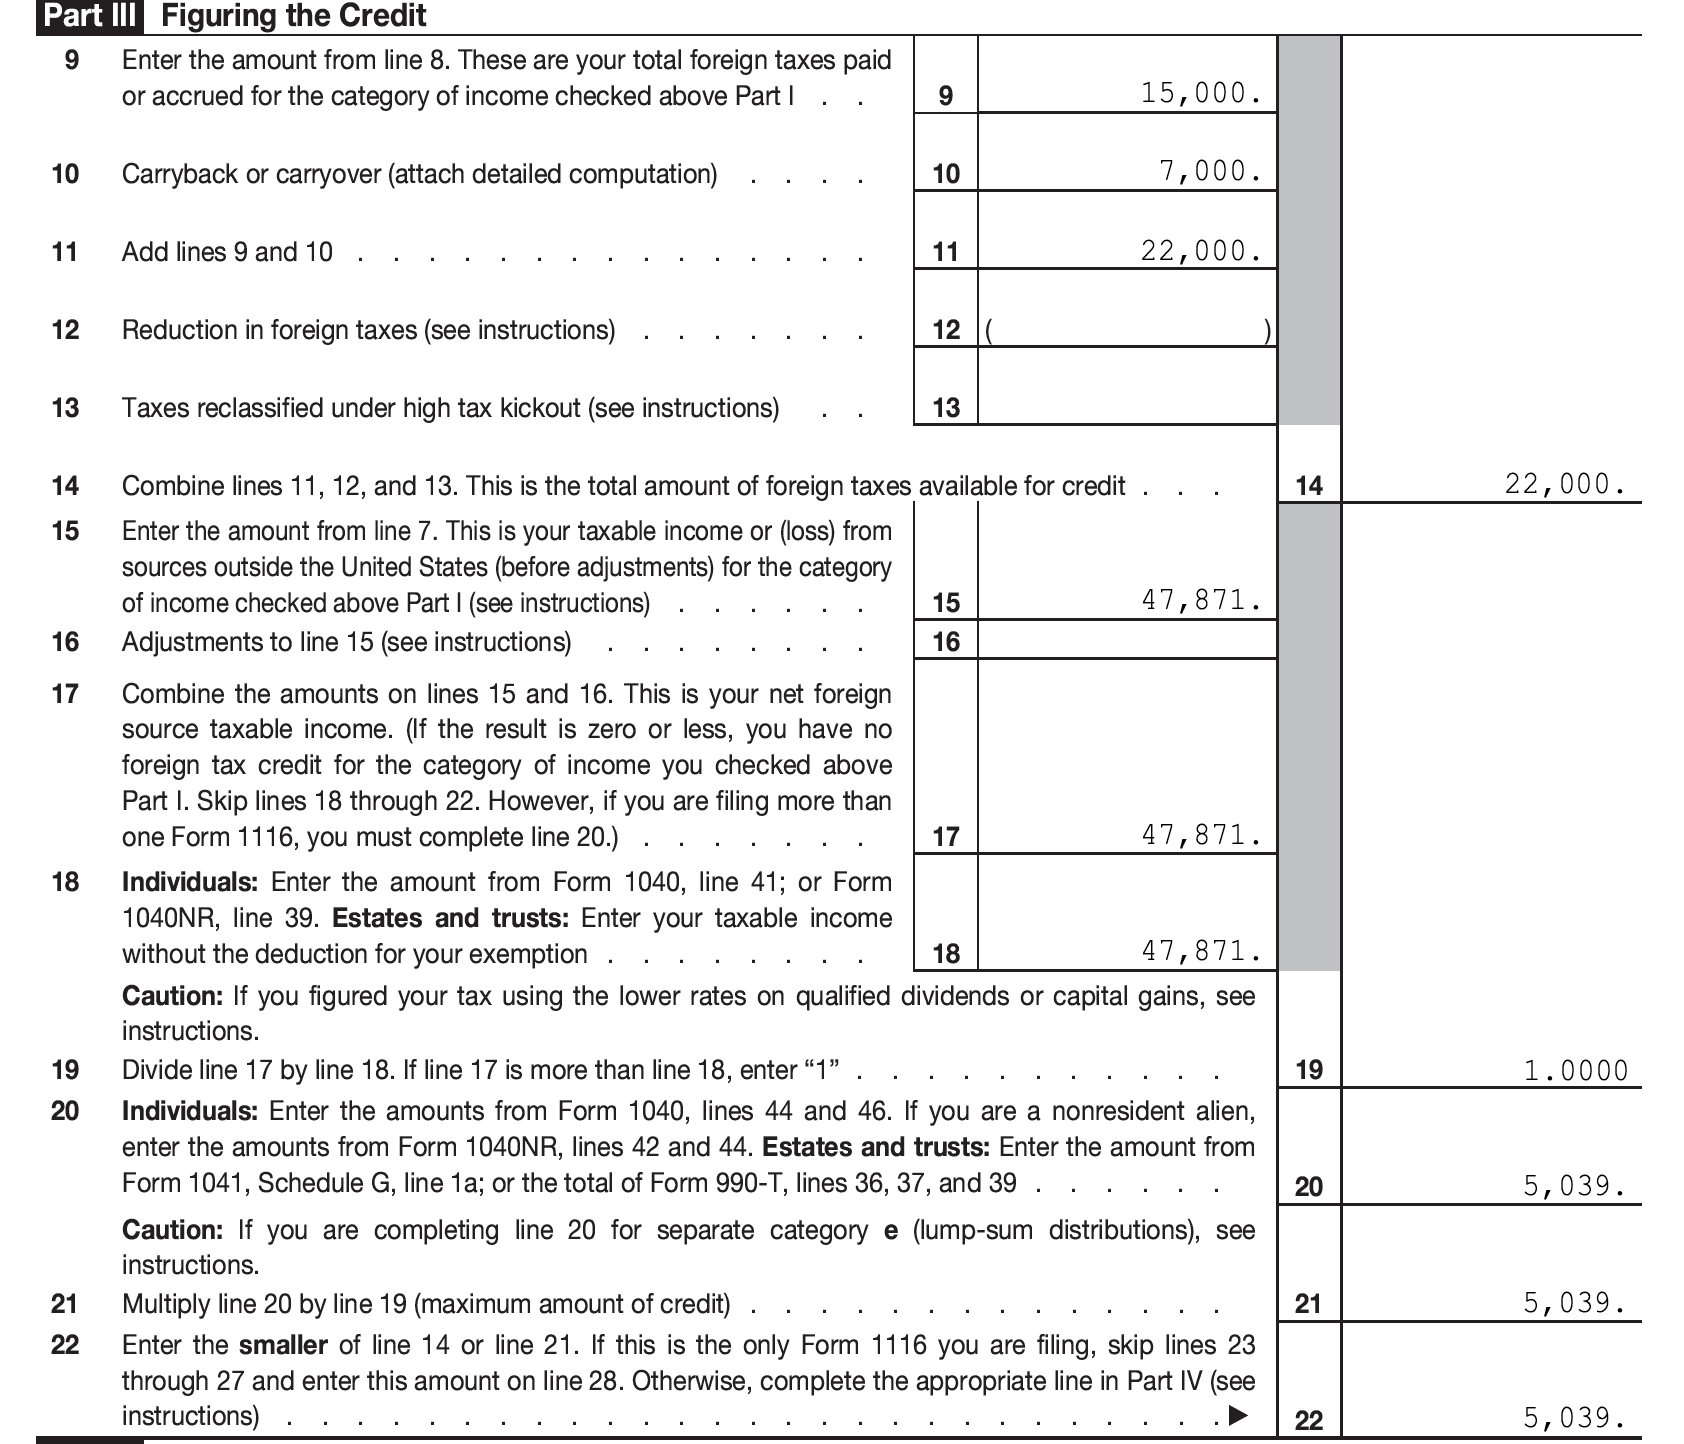 Tax Prepration Itemized Deductions Worksheet Printable